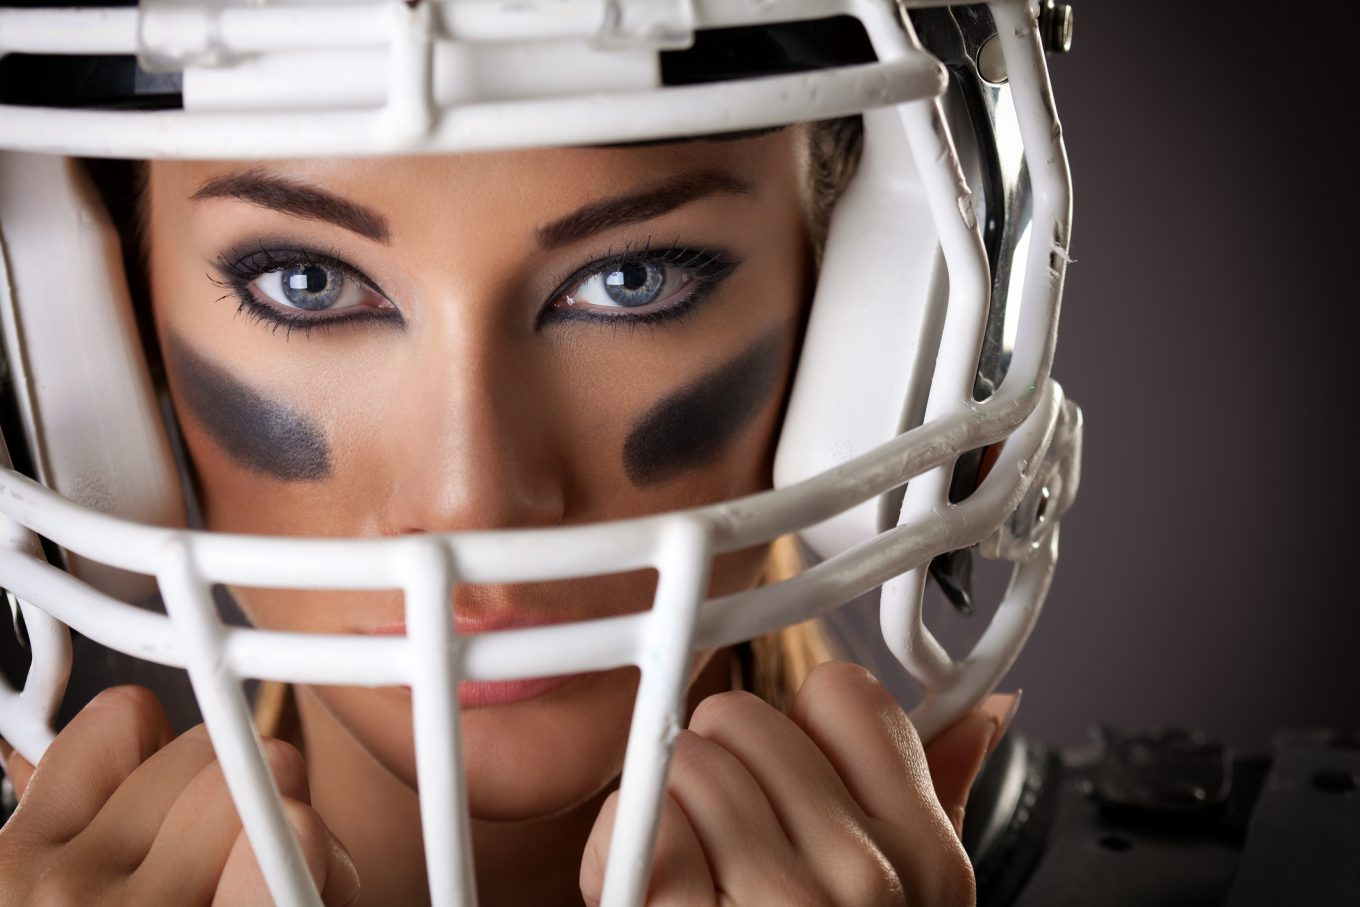 10 Tips to Show Off Your Team Spirit [Super Bowl 2017 Edition]